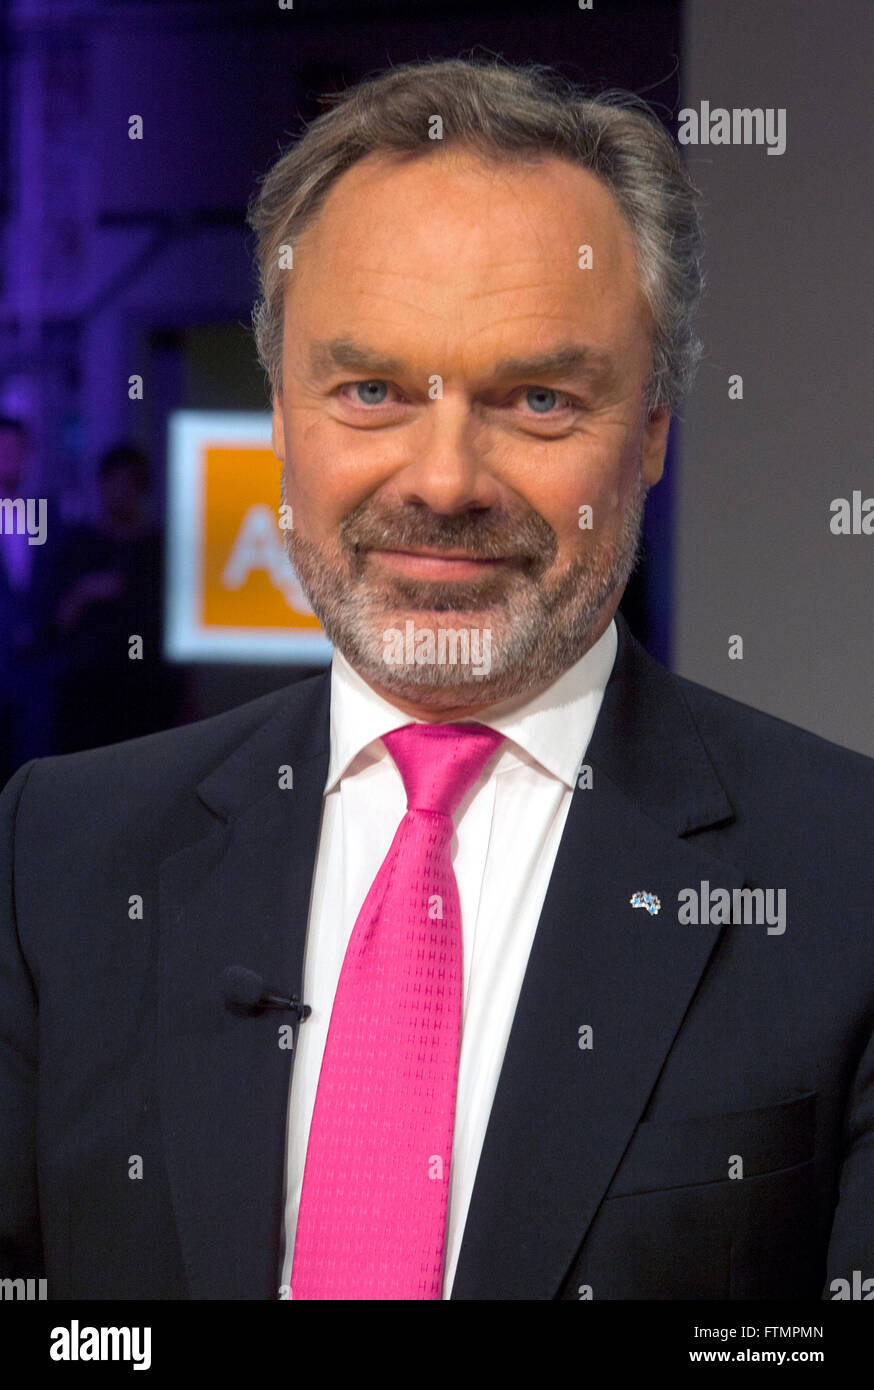 JAN BJÖRKLUND leader of the Swedish Liberals - Stock Image